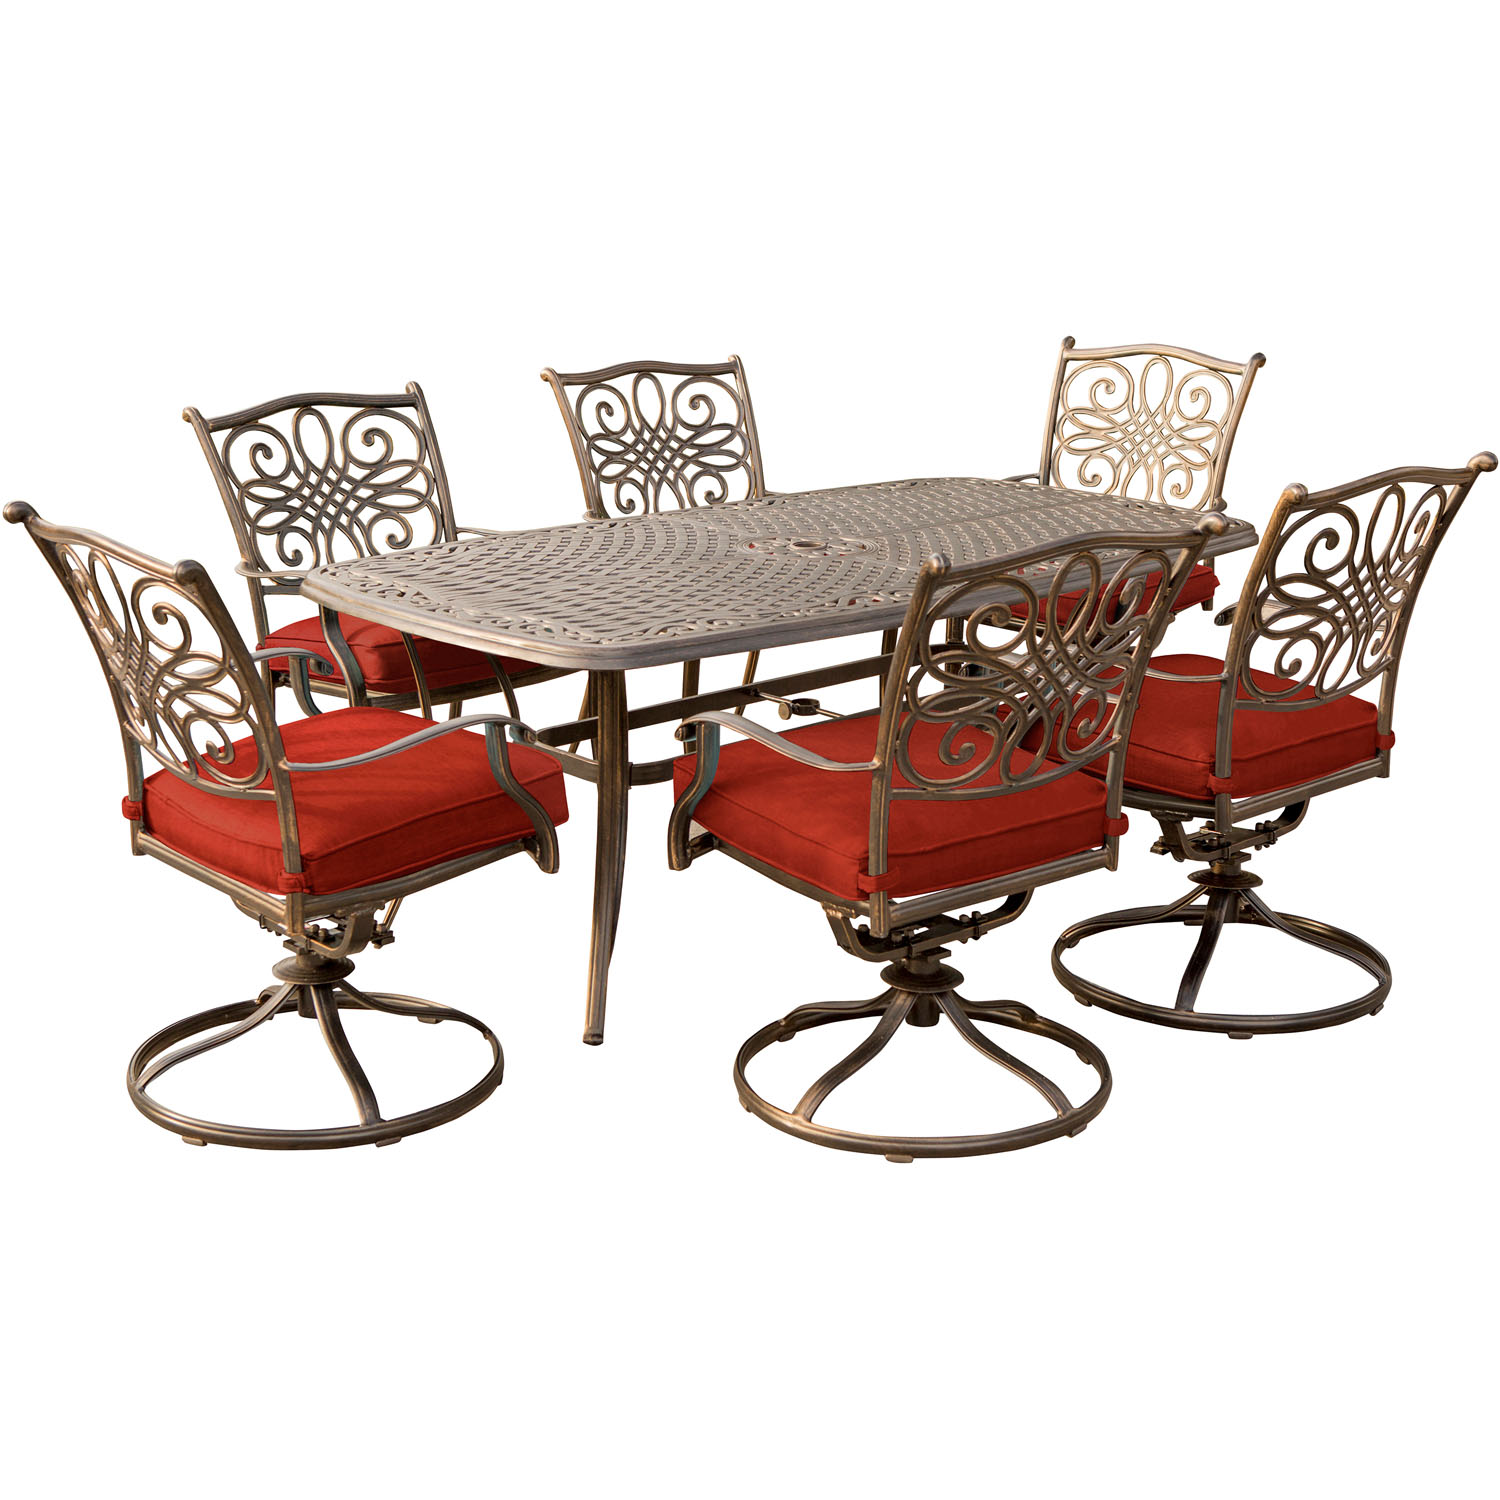 Hanover Traditions 7-Piece Outdoor Dining Set with Cast-Top Table and 6 Swivel Rockers